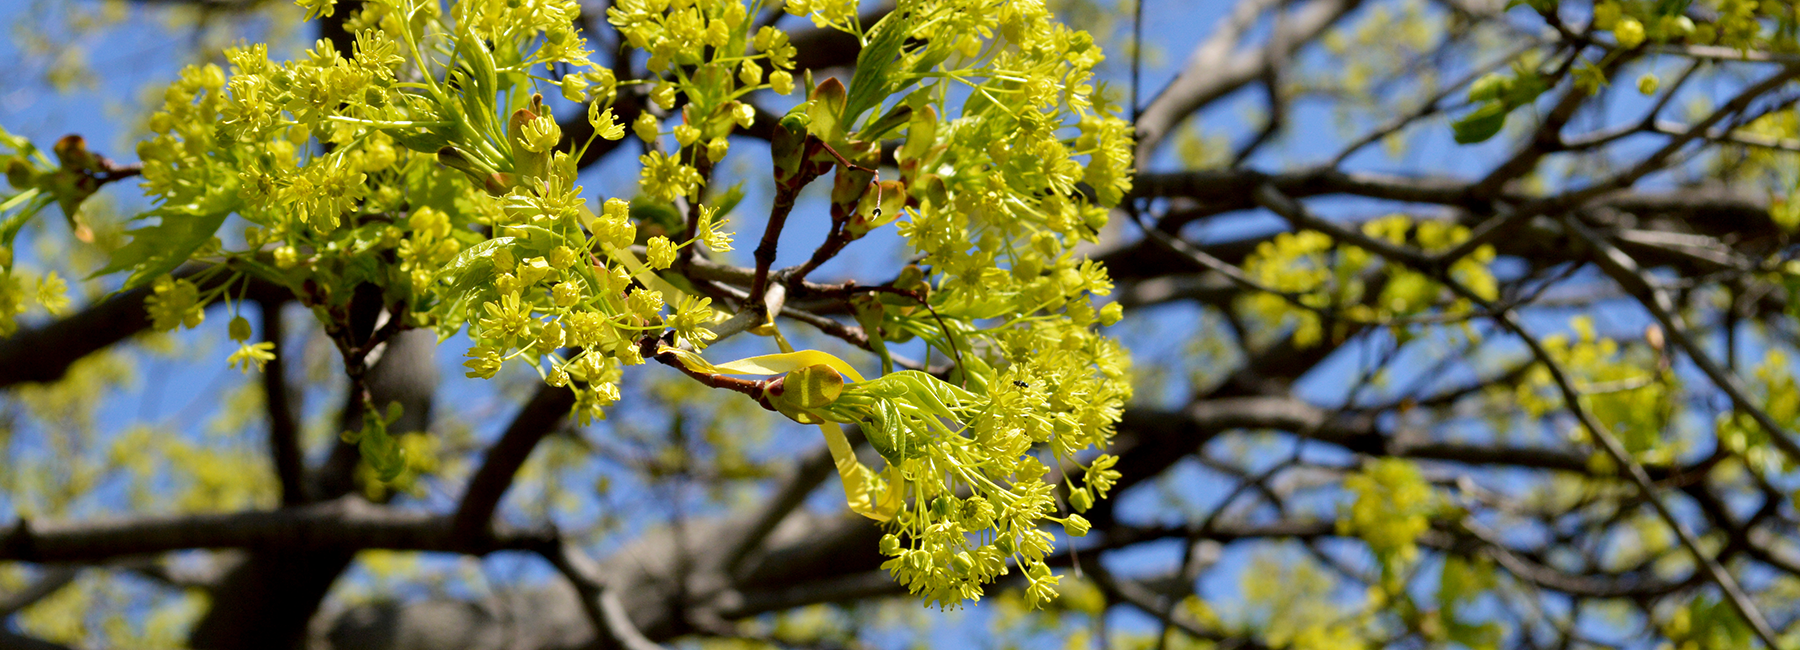 Close up of a tree with leaves budding